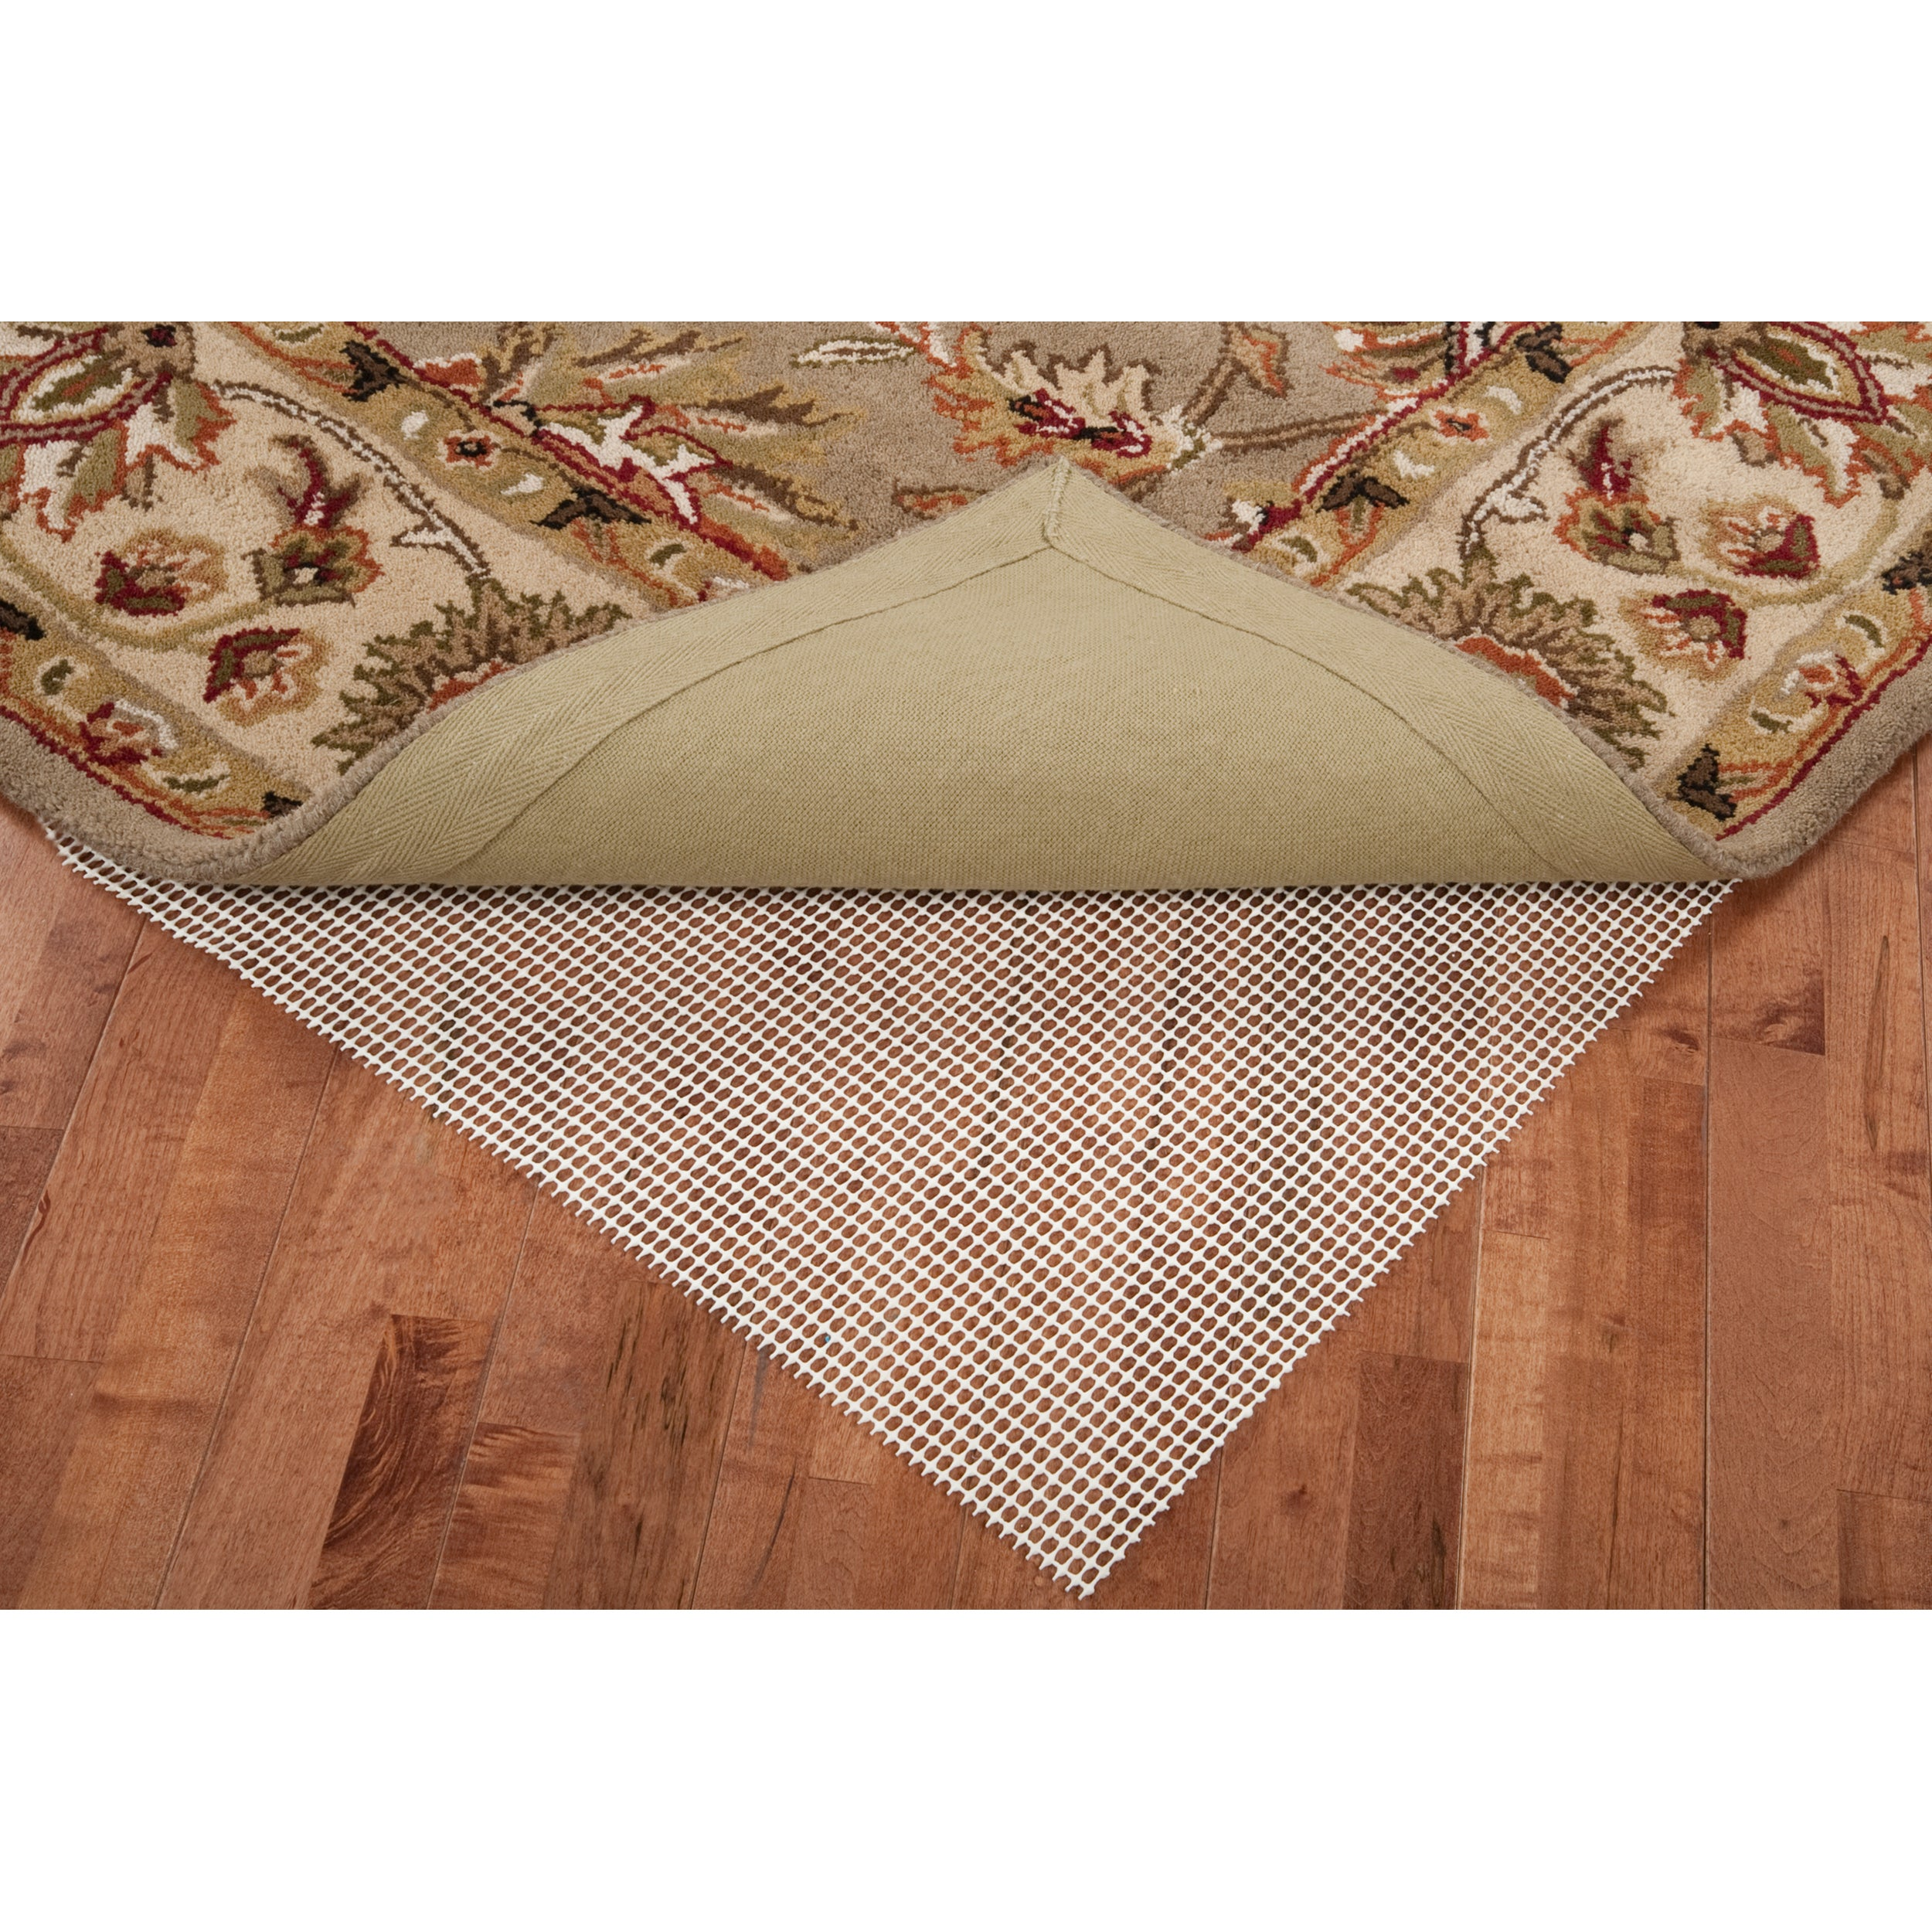 Limitless Rug Pad (6' Round)